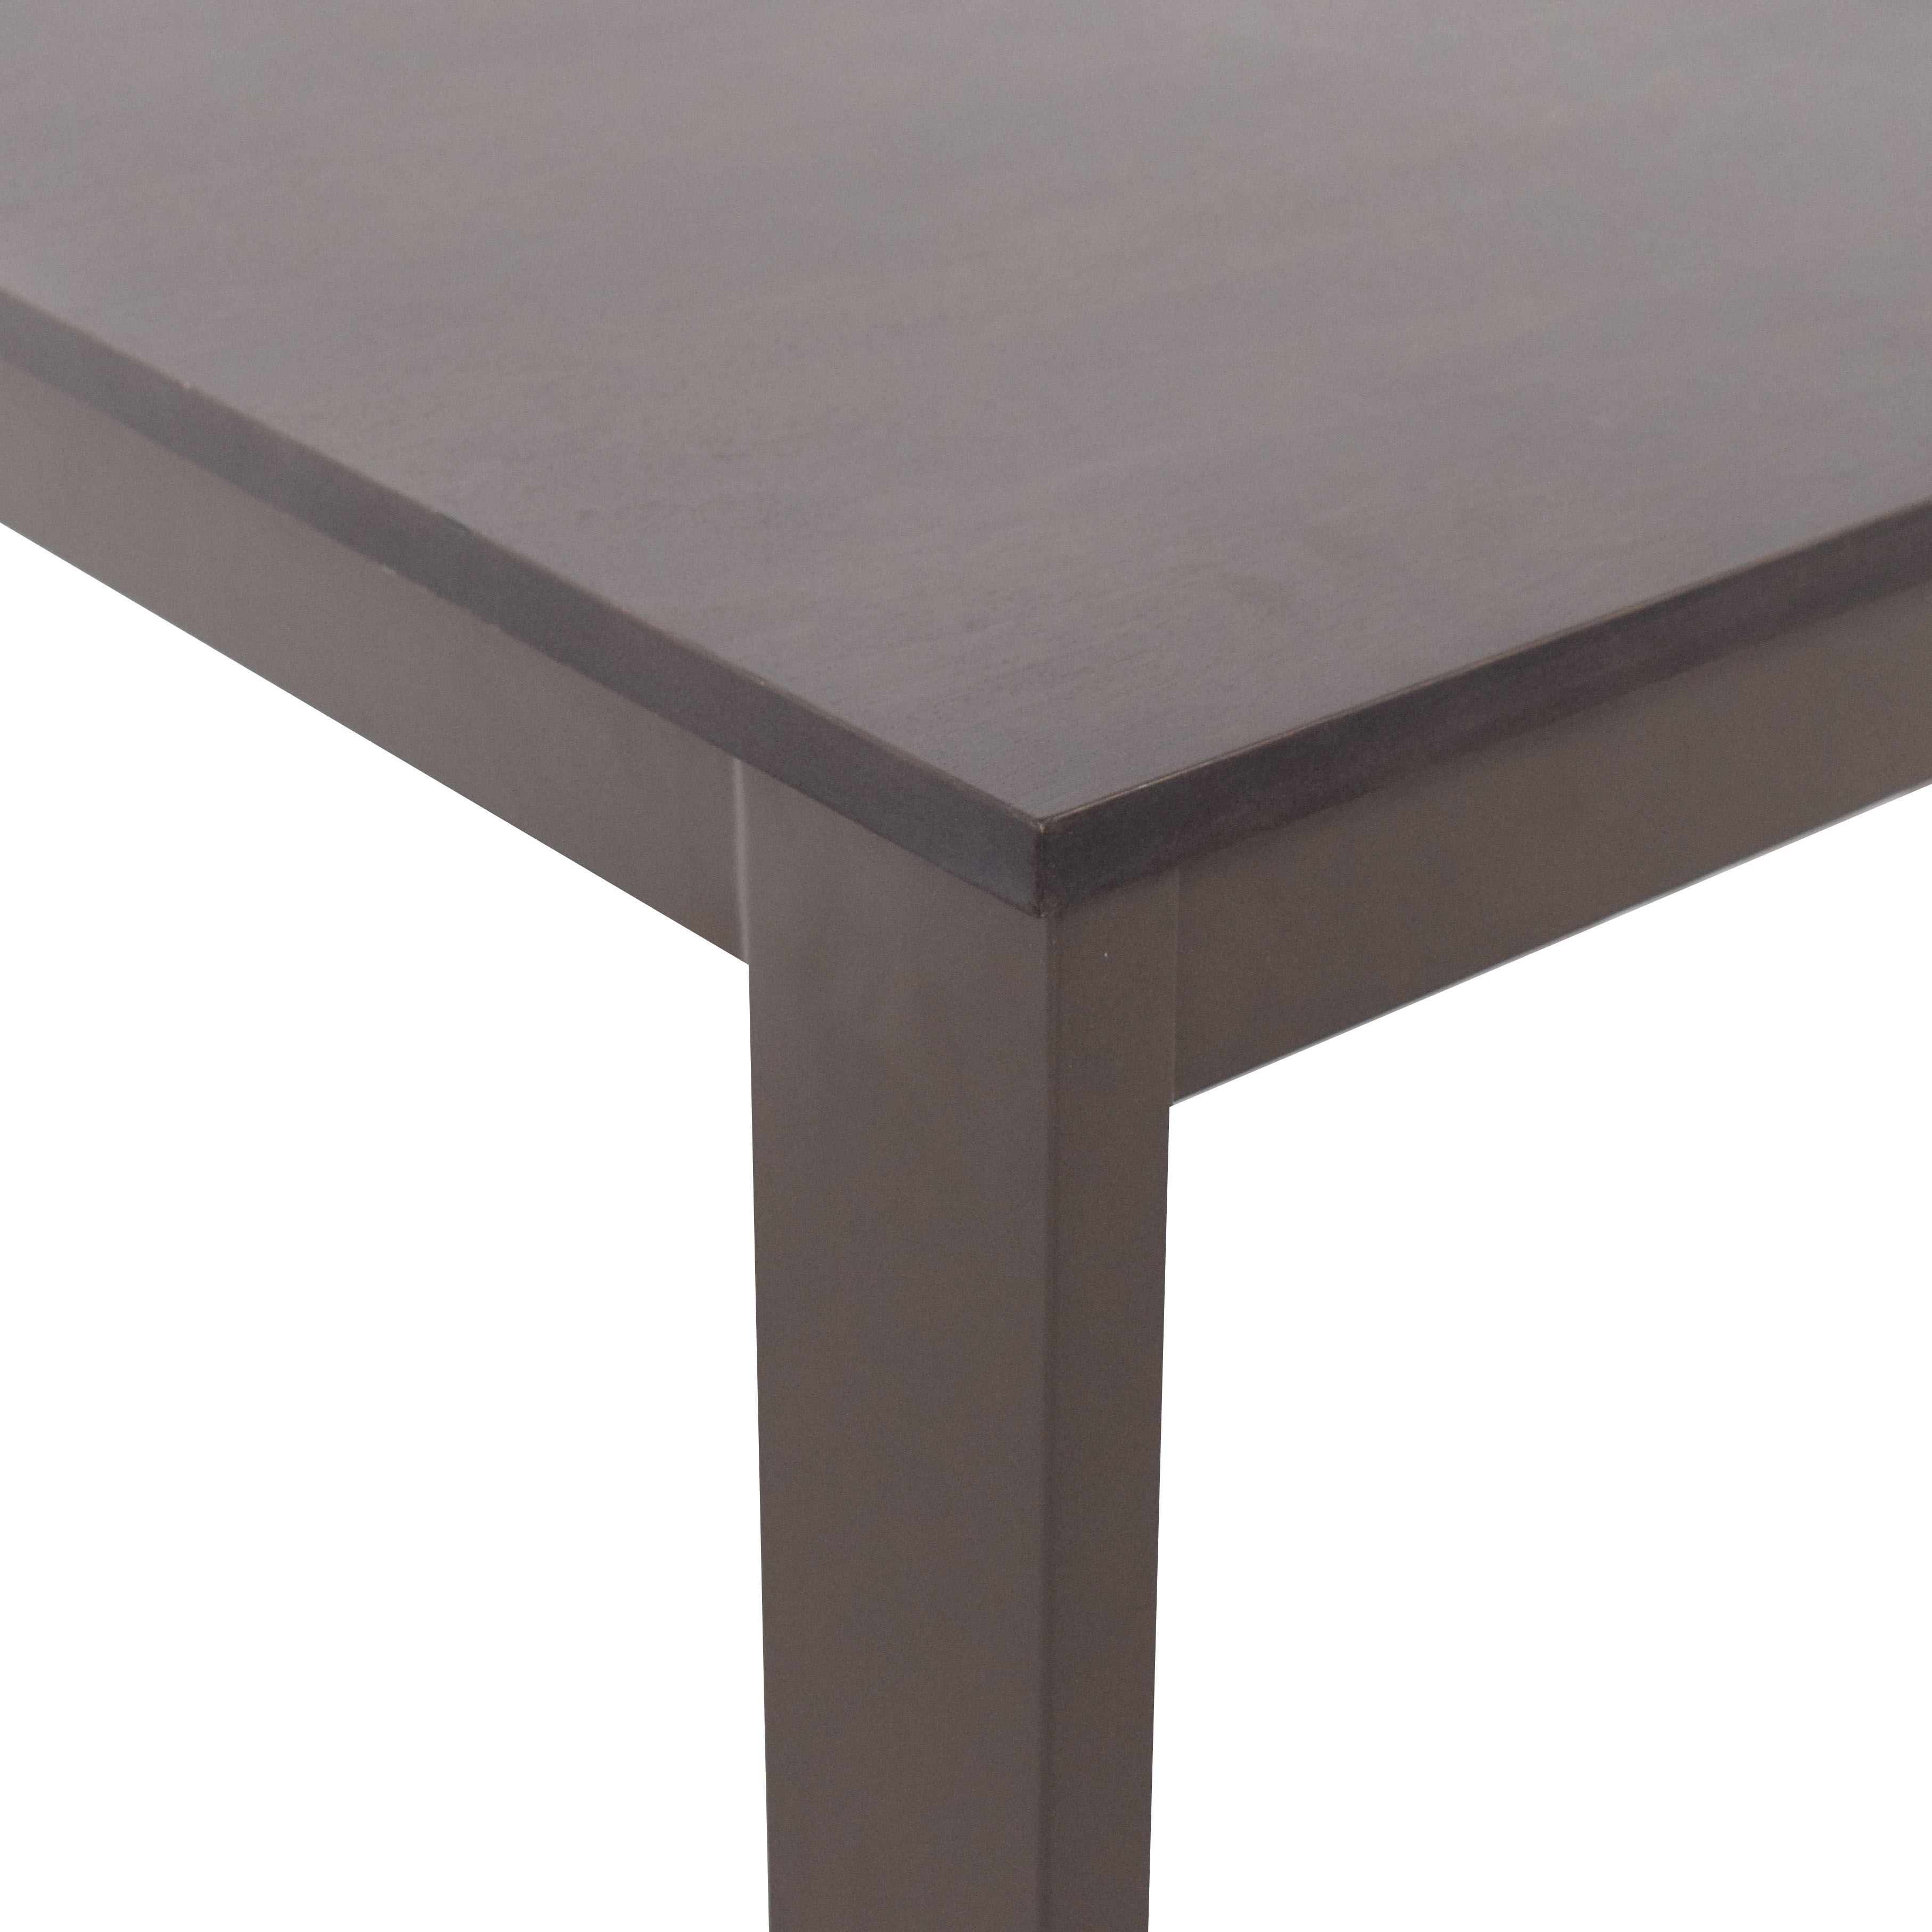 CB2 CB2 Core Extension Dining Table Dinner Tables